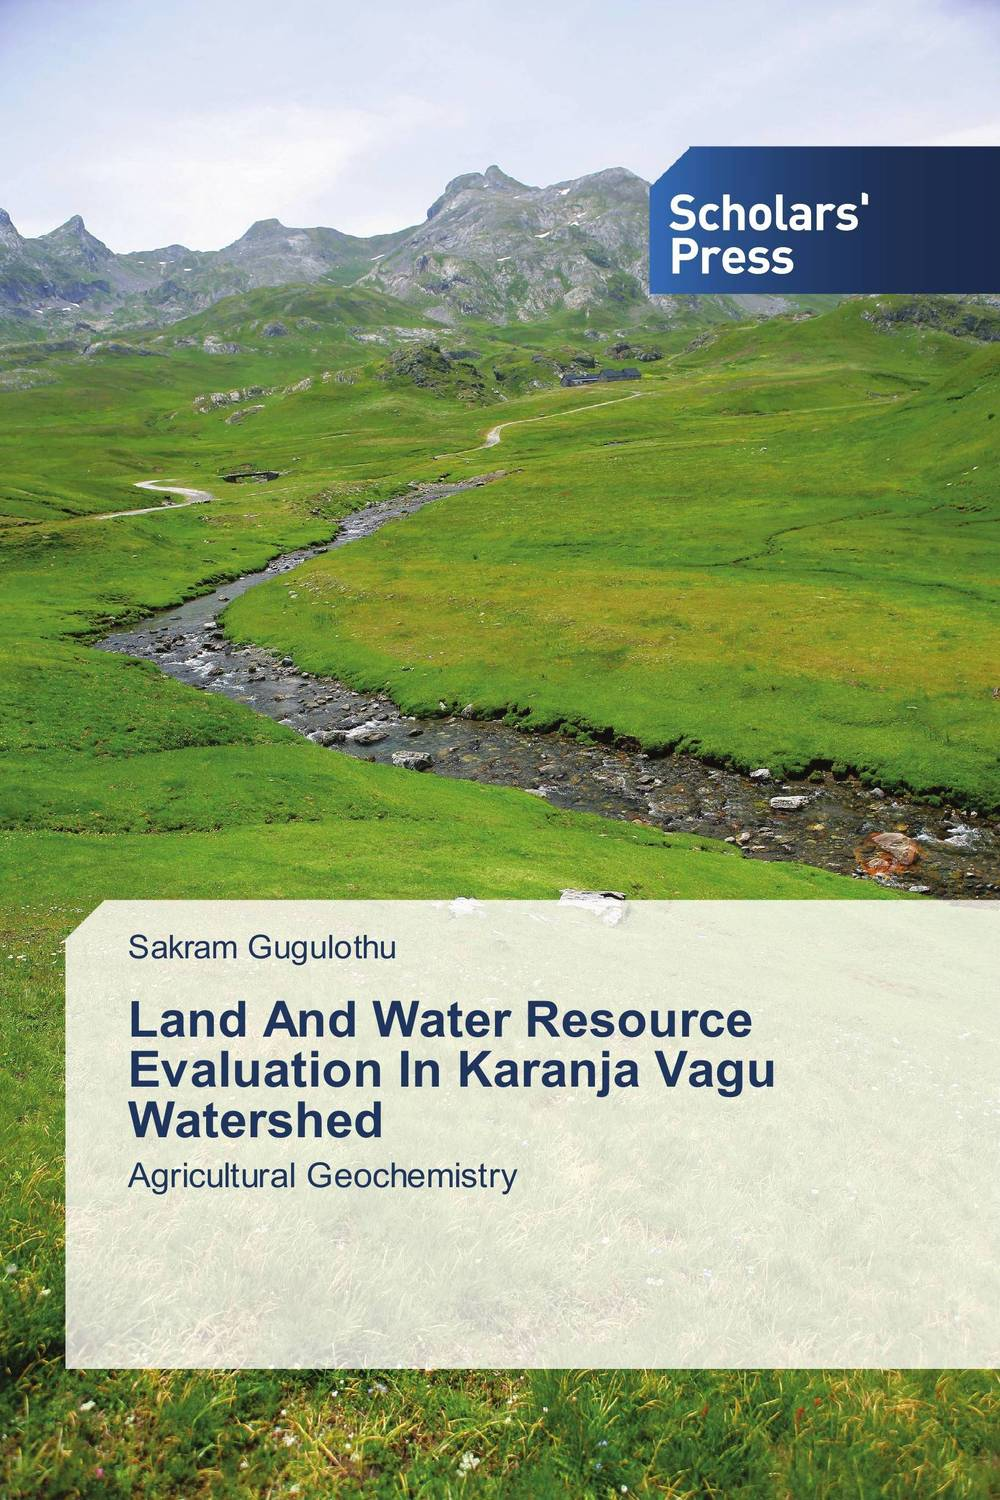 Land And Water Resource Evaluation In Karanja Vagu Watershed evaluation of the impact of a mega sporting event